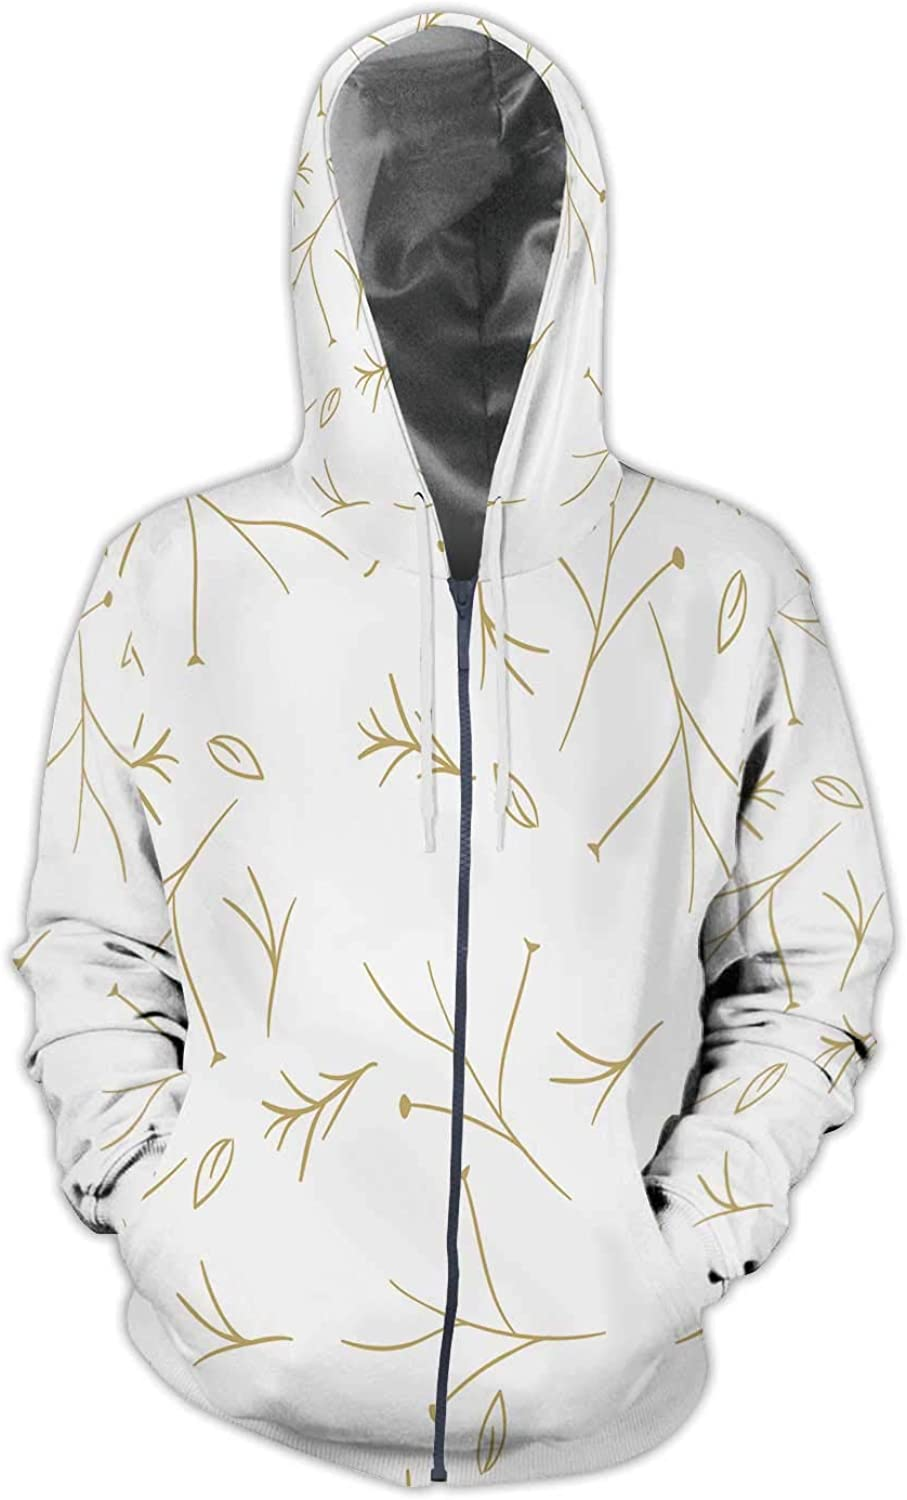 D Male with Brain on Background with Connecting dots and Lines,Mens Print 3D Fashion Hoodies Sweatshirts S